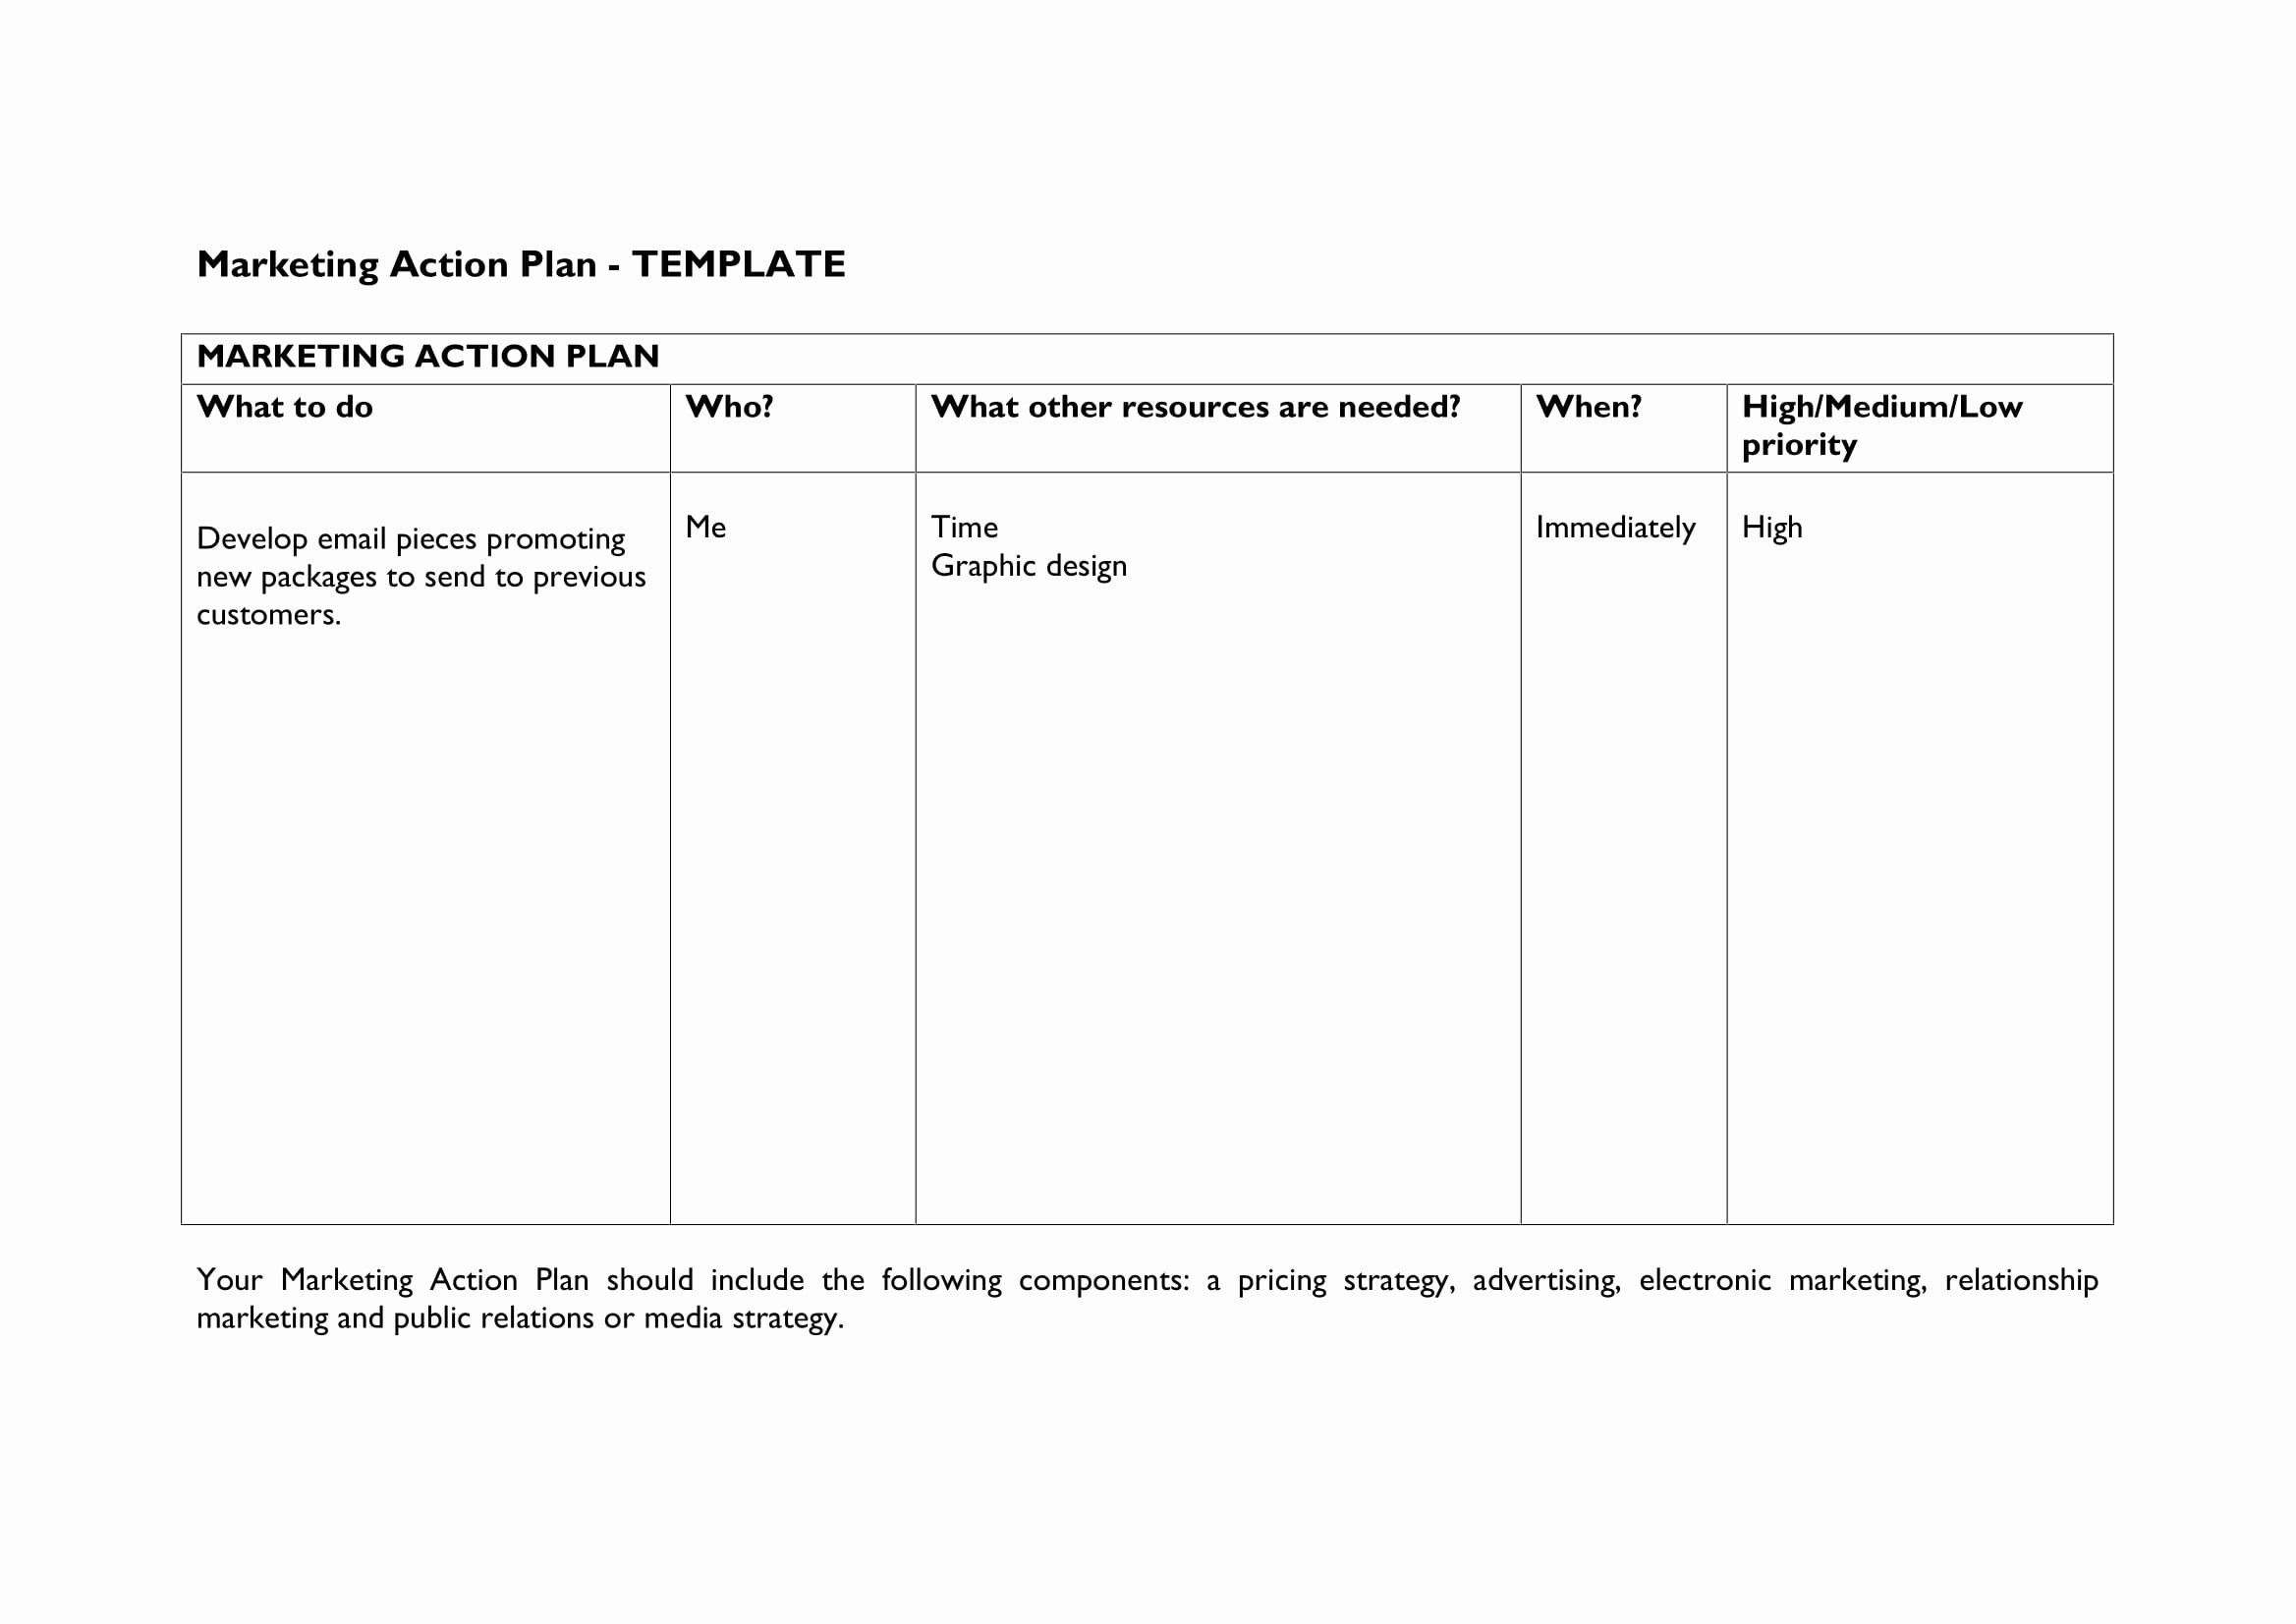 Marketing Action Plan Templates Luxury 10 Marketing Action Plan Examples & Templates